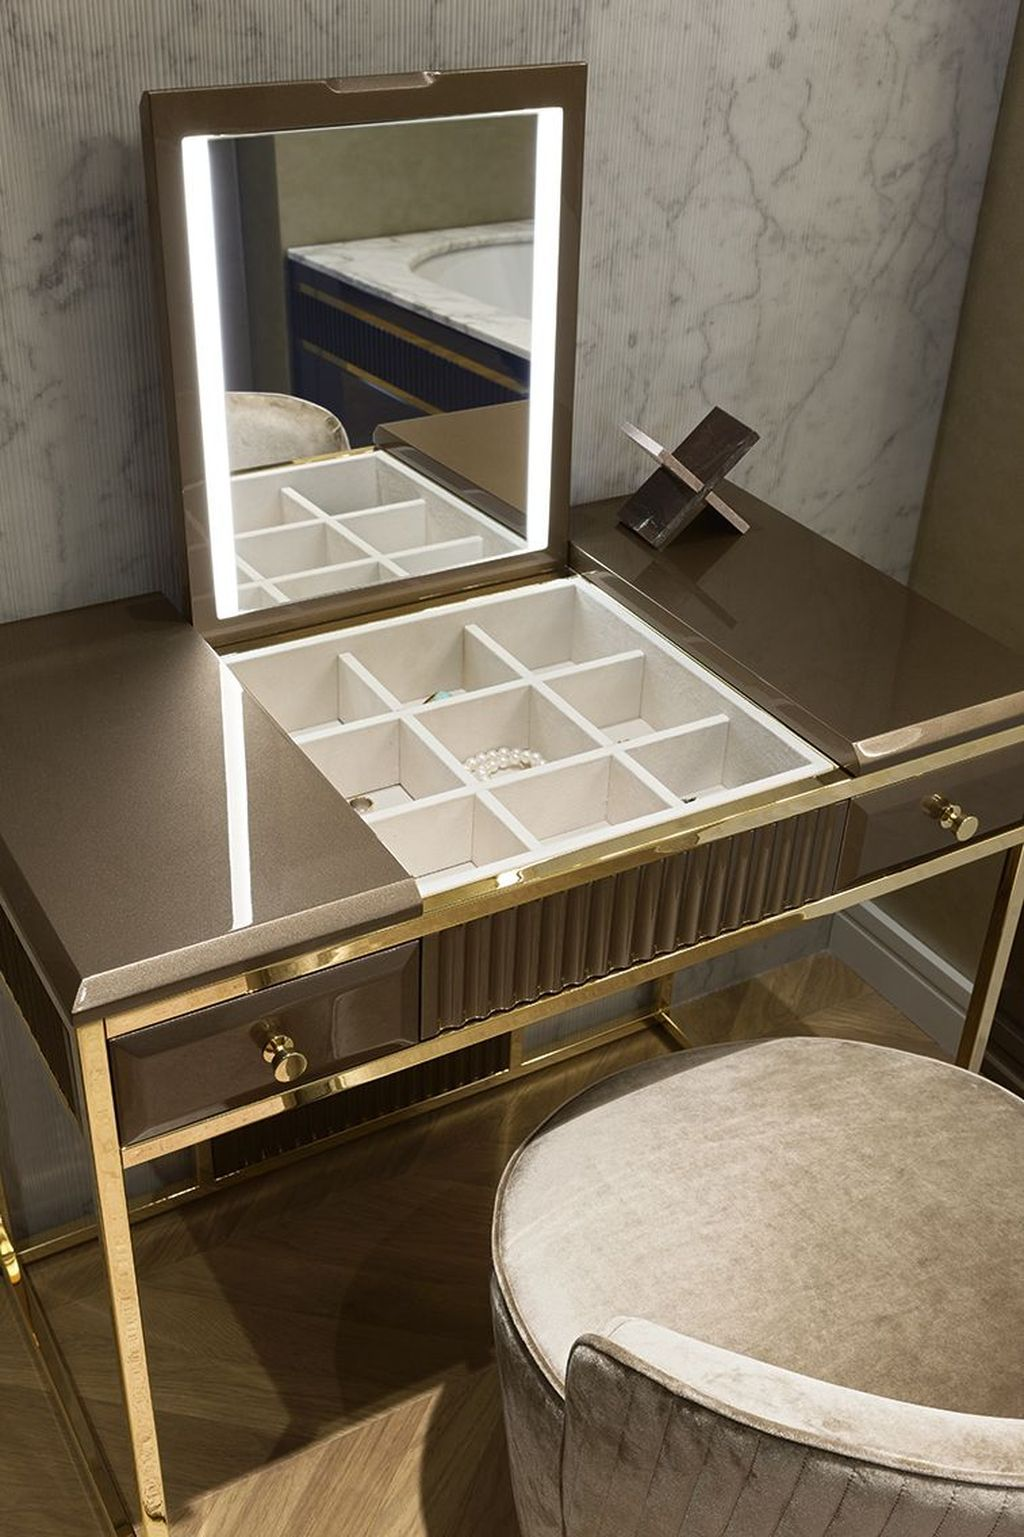 Nice 35 Beautiful Dressing Table Design For Your Room More At Https Homishome Com 2019 06 12 35 Be Dressing Table Design Home Room Design Bathroom Furniture